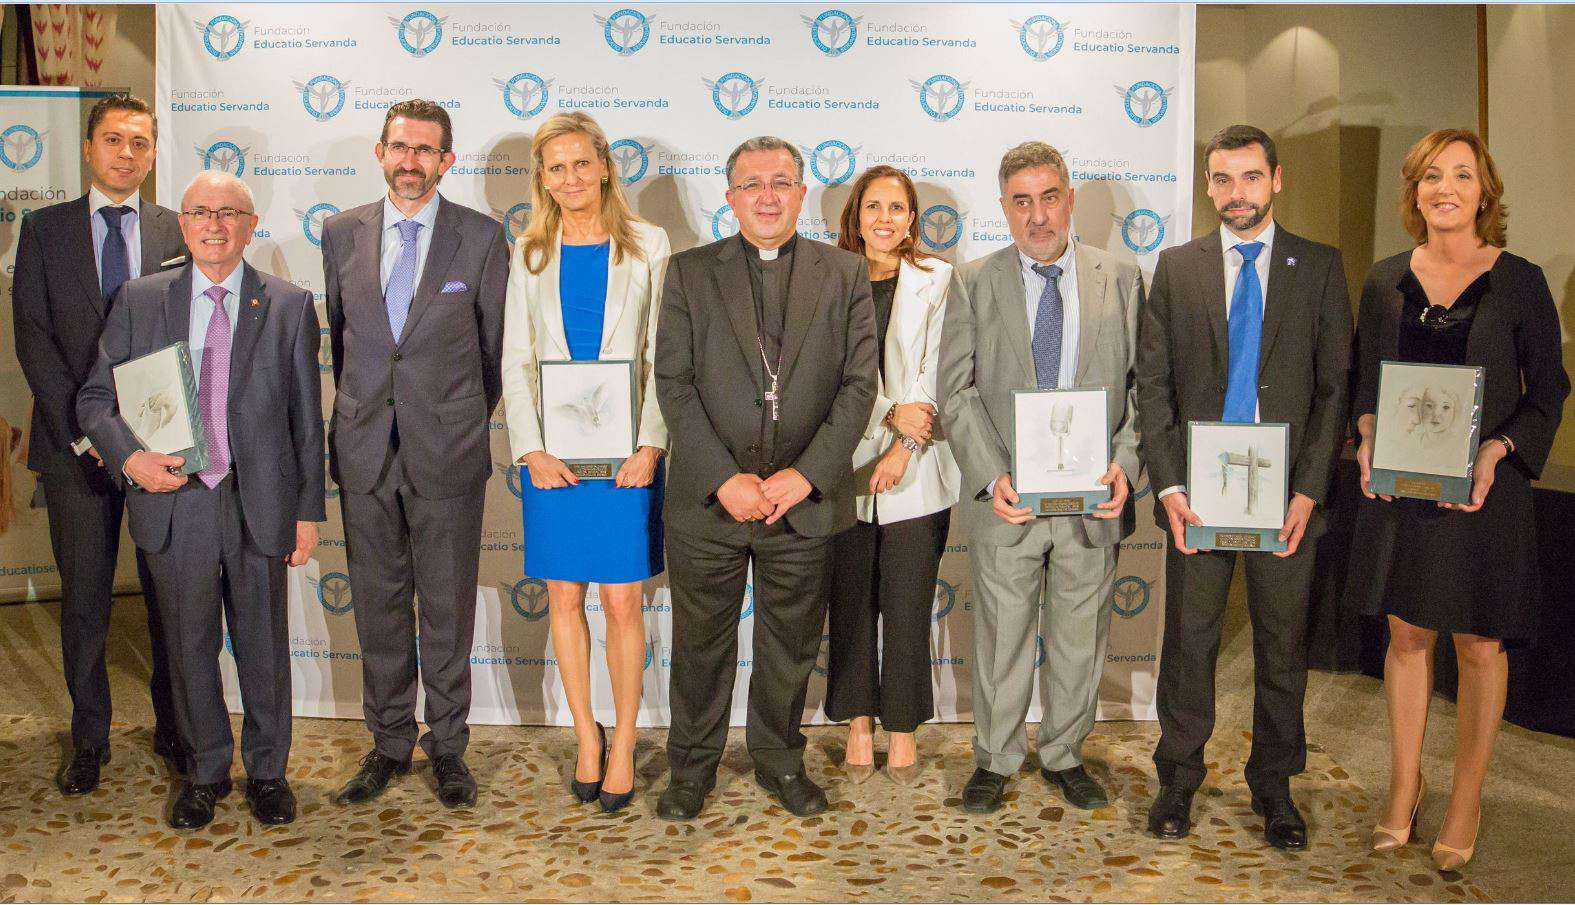 Premios Educatio 2018